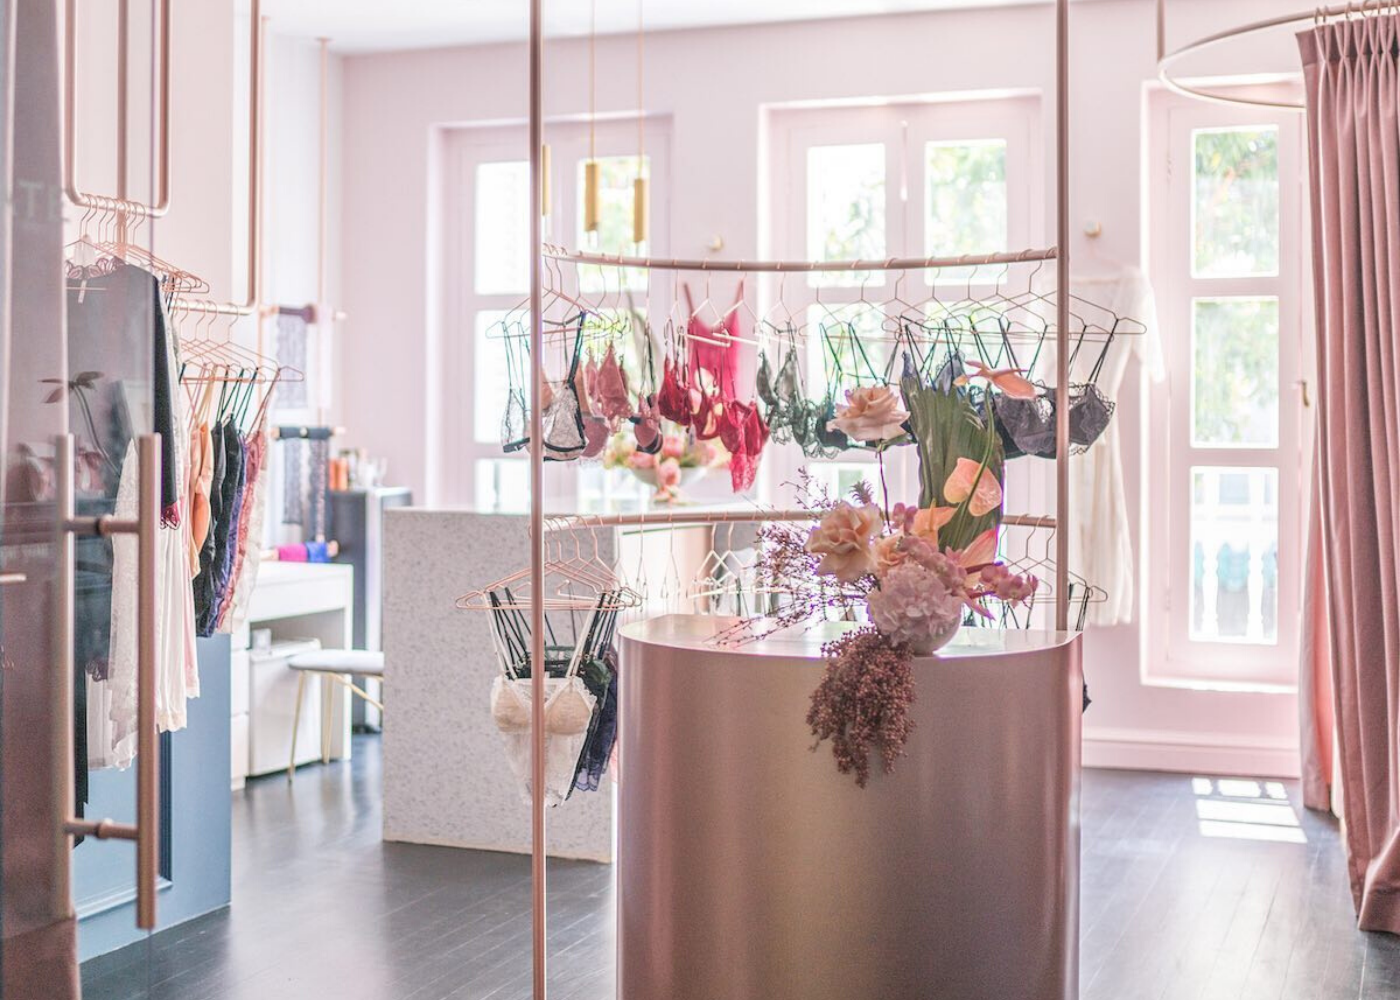 Lingerie stores in Singapore: Perk by Kate